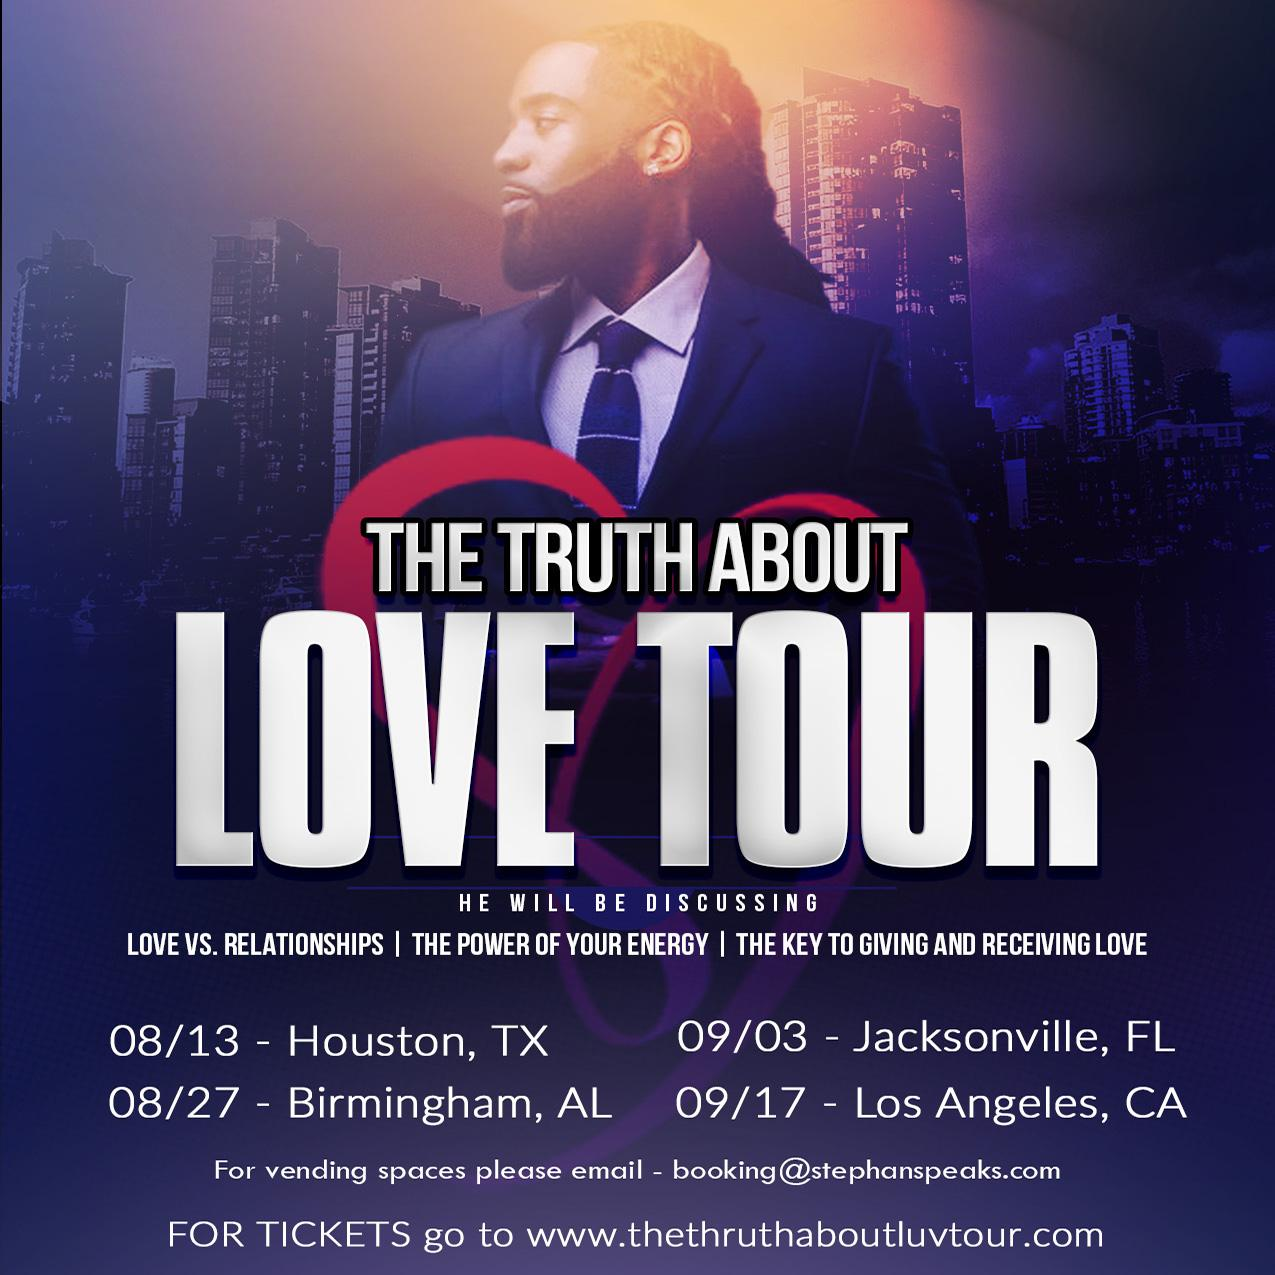 Truth About Love Tour - New York City, NY